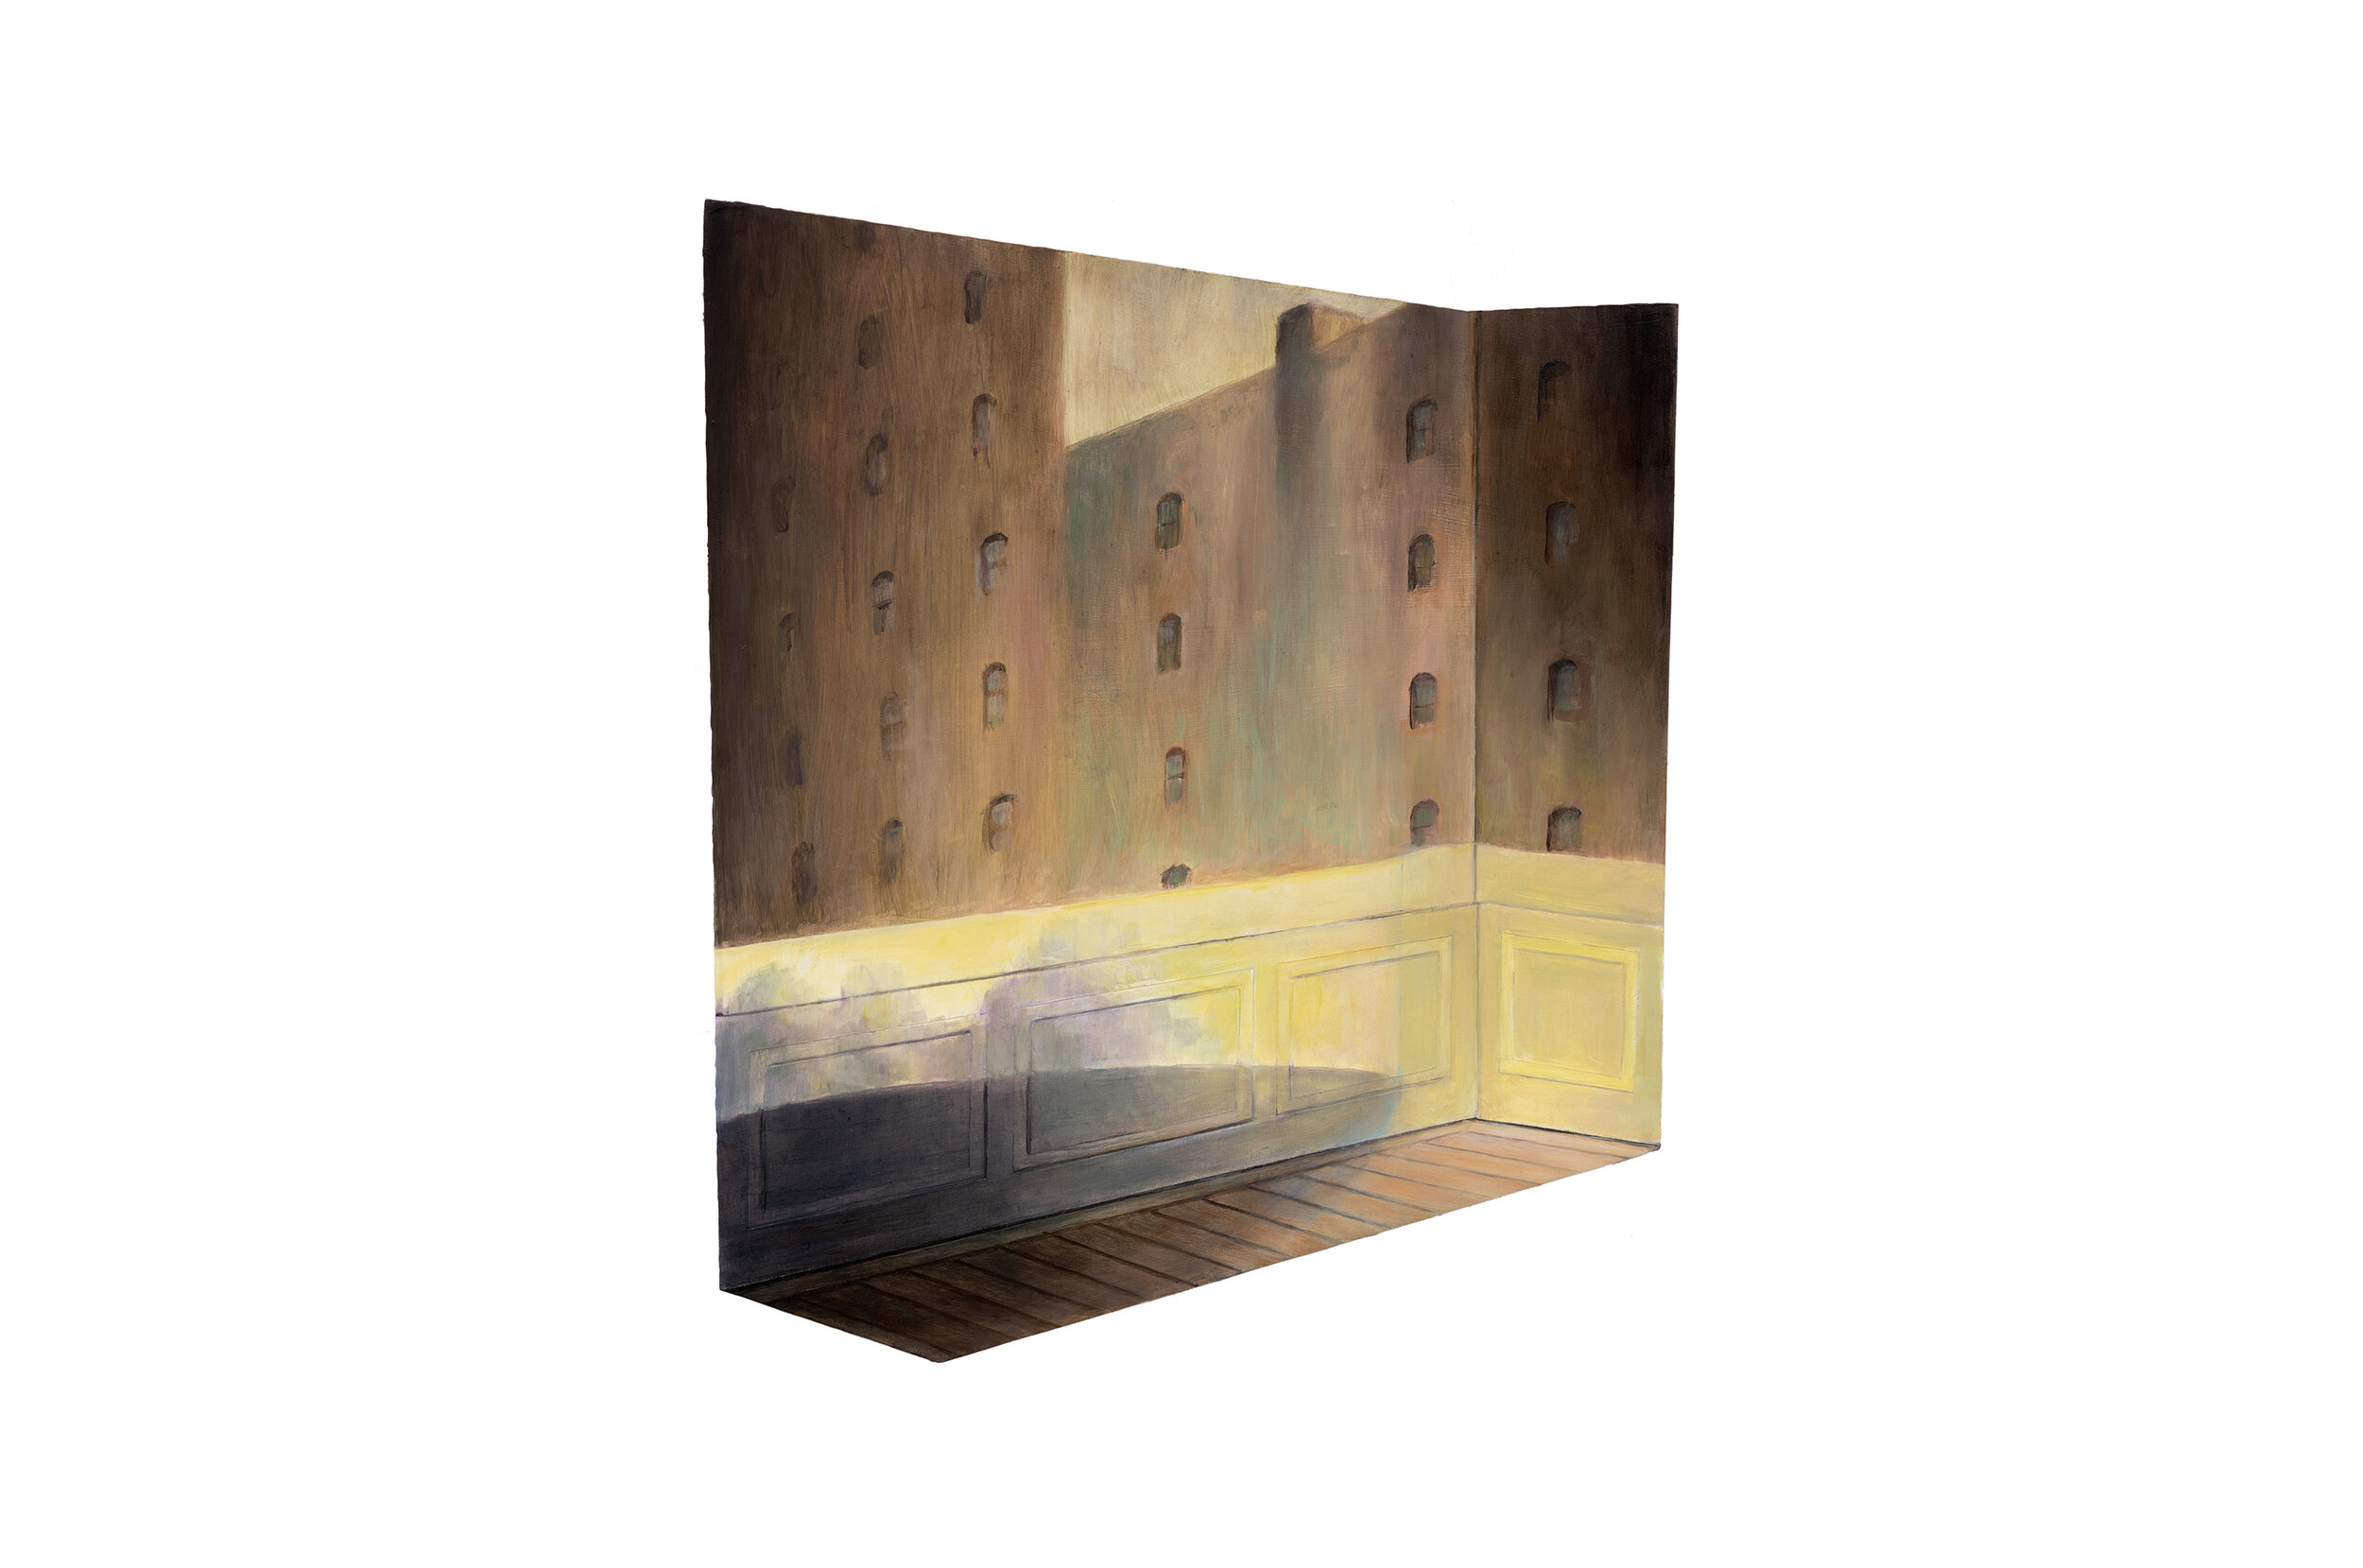 """Edward Hopper's """"Approaching a City"""" Projected over Model of Hammershøi's Room   2019  Oil on shaped and raised relief panel  15 x 12.75 inches"""